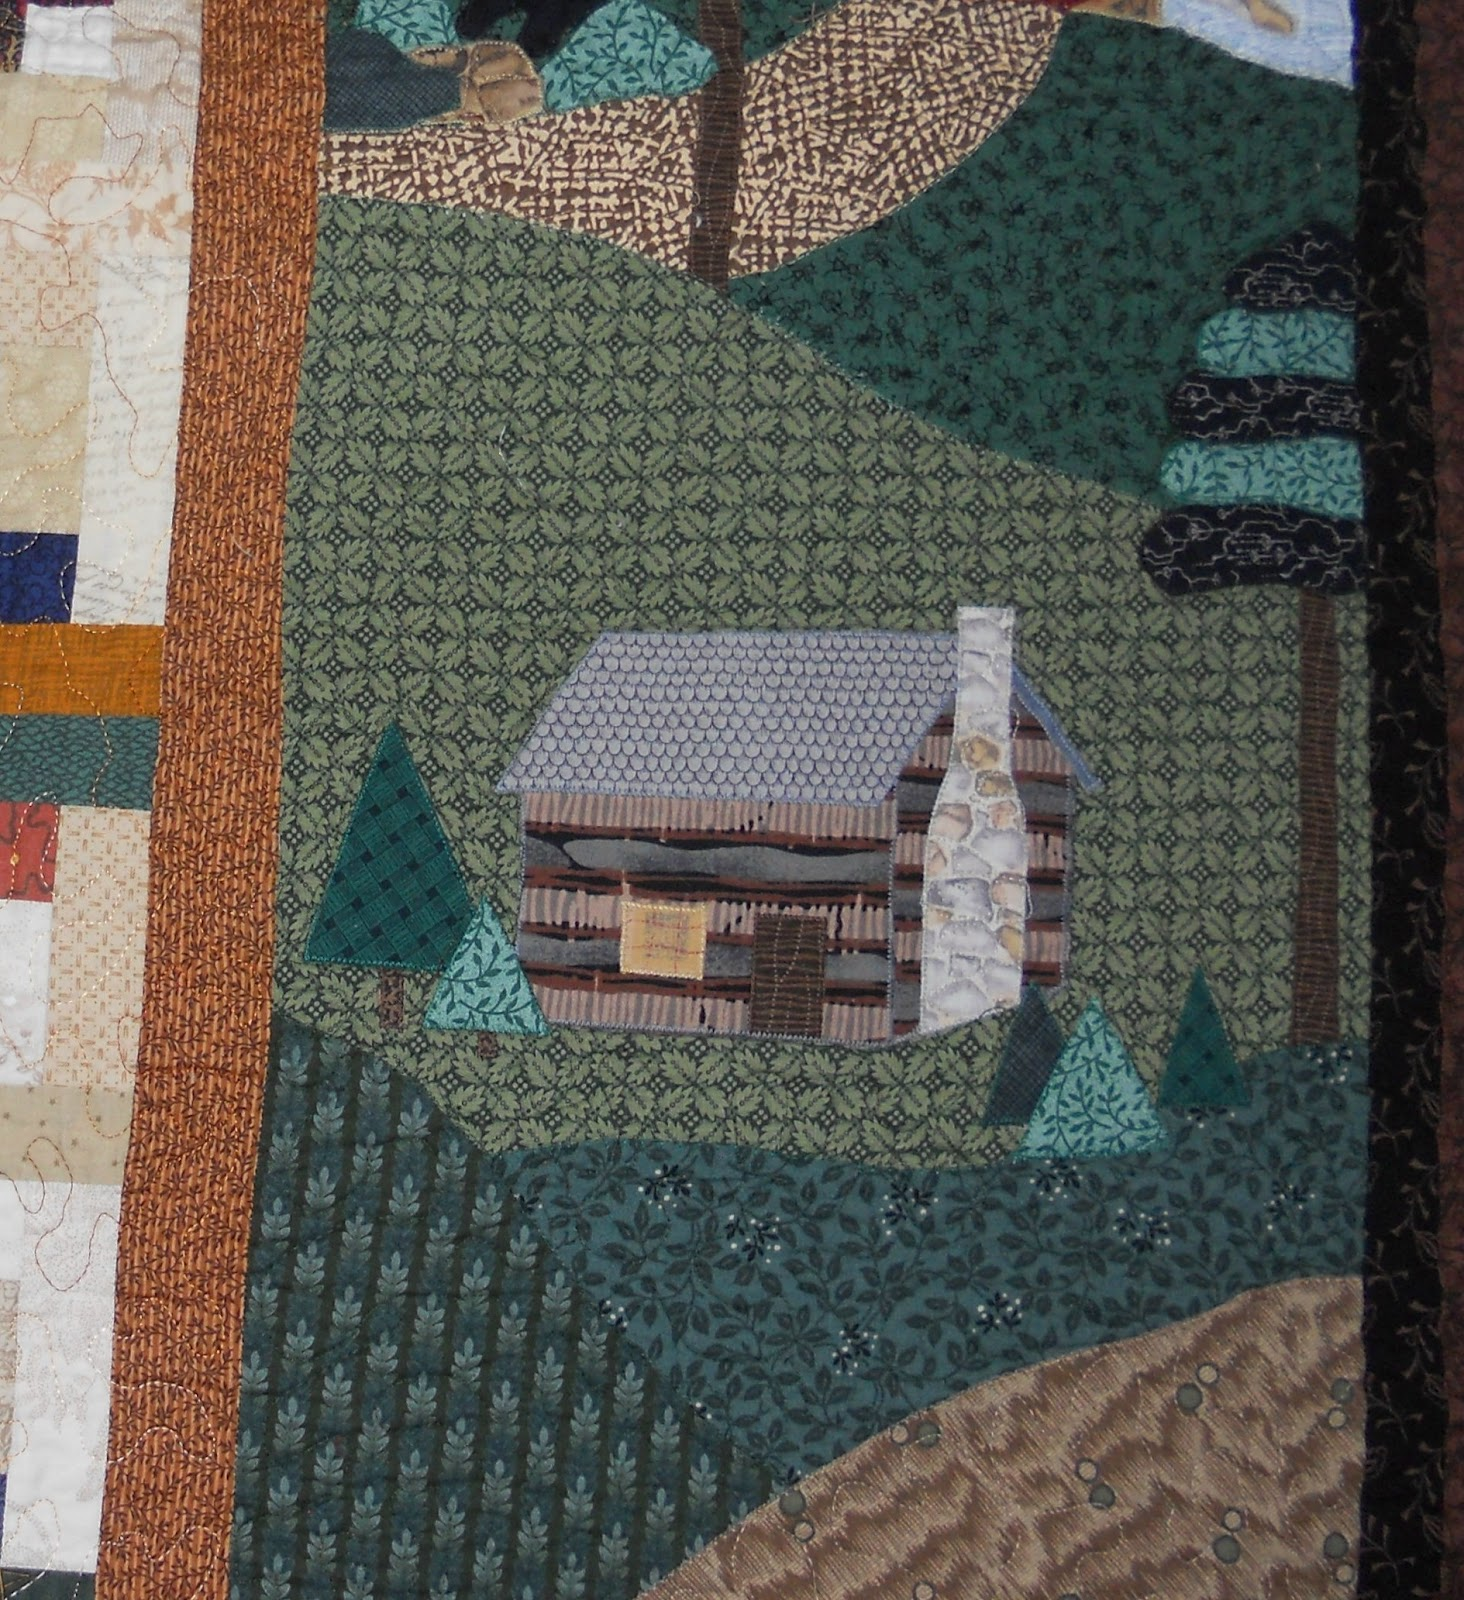 Very Impressive portraiture of Log Cabin Quilter: MY SPECIAL QUILT with #744B39 color and 1464x1600 pixels